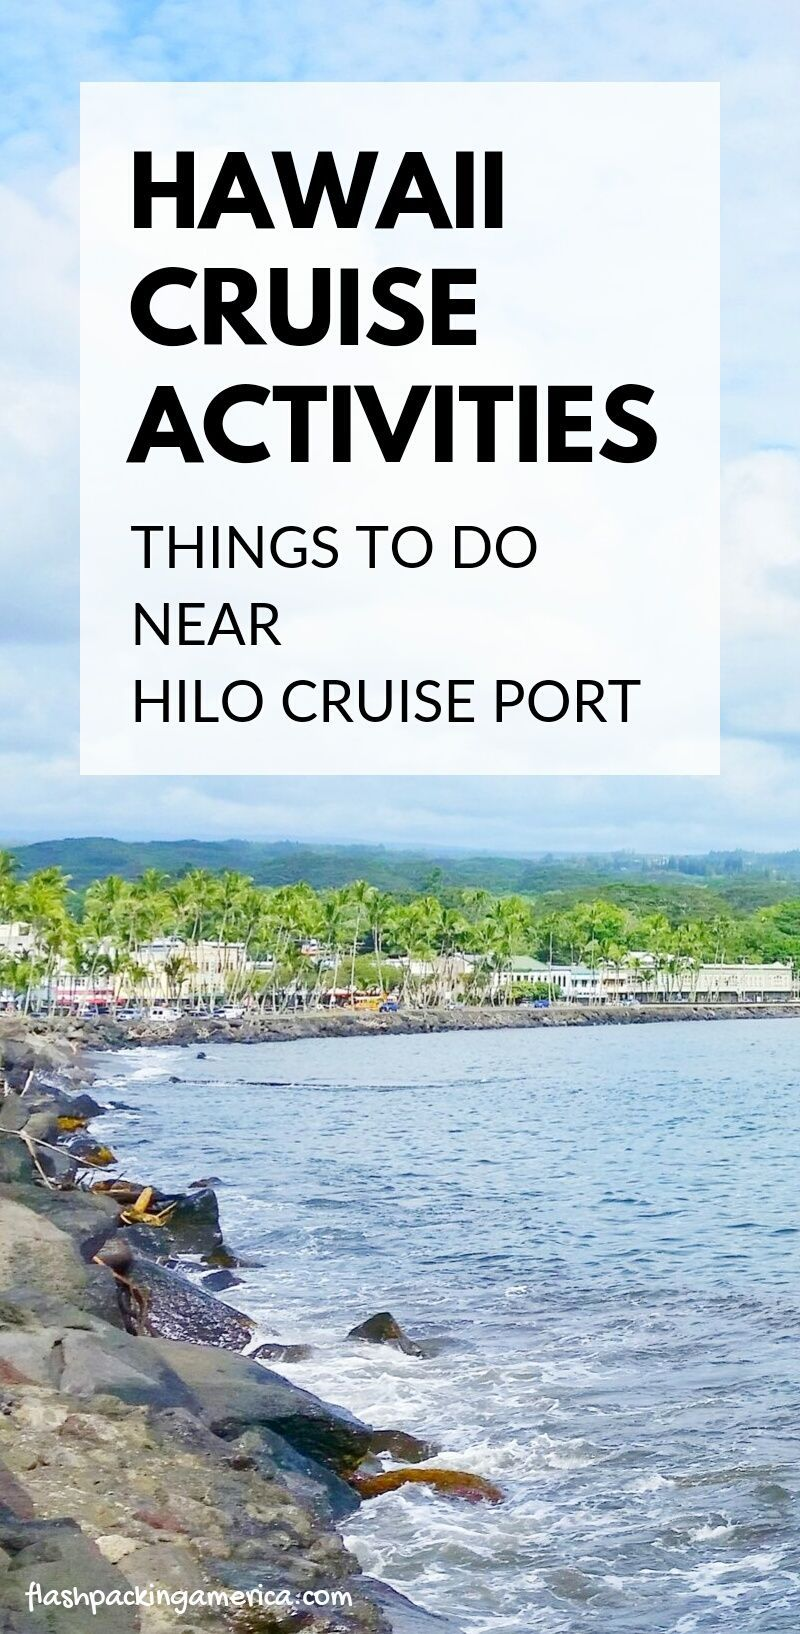 15+ Things to do near Hilo cruise port + how far is